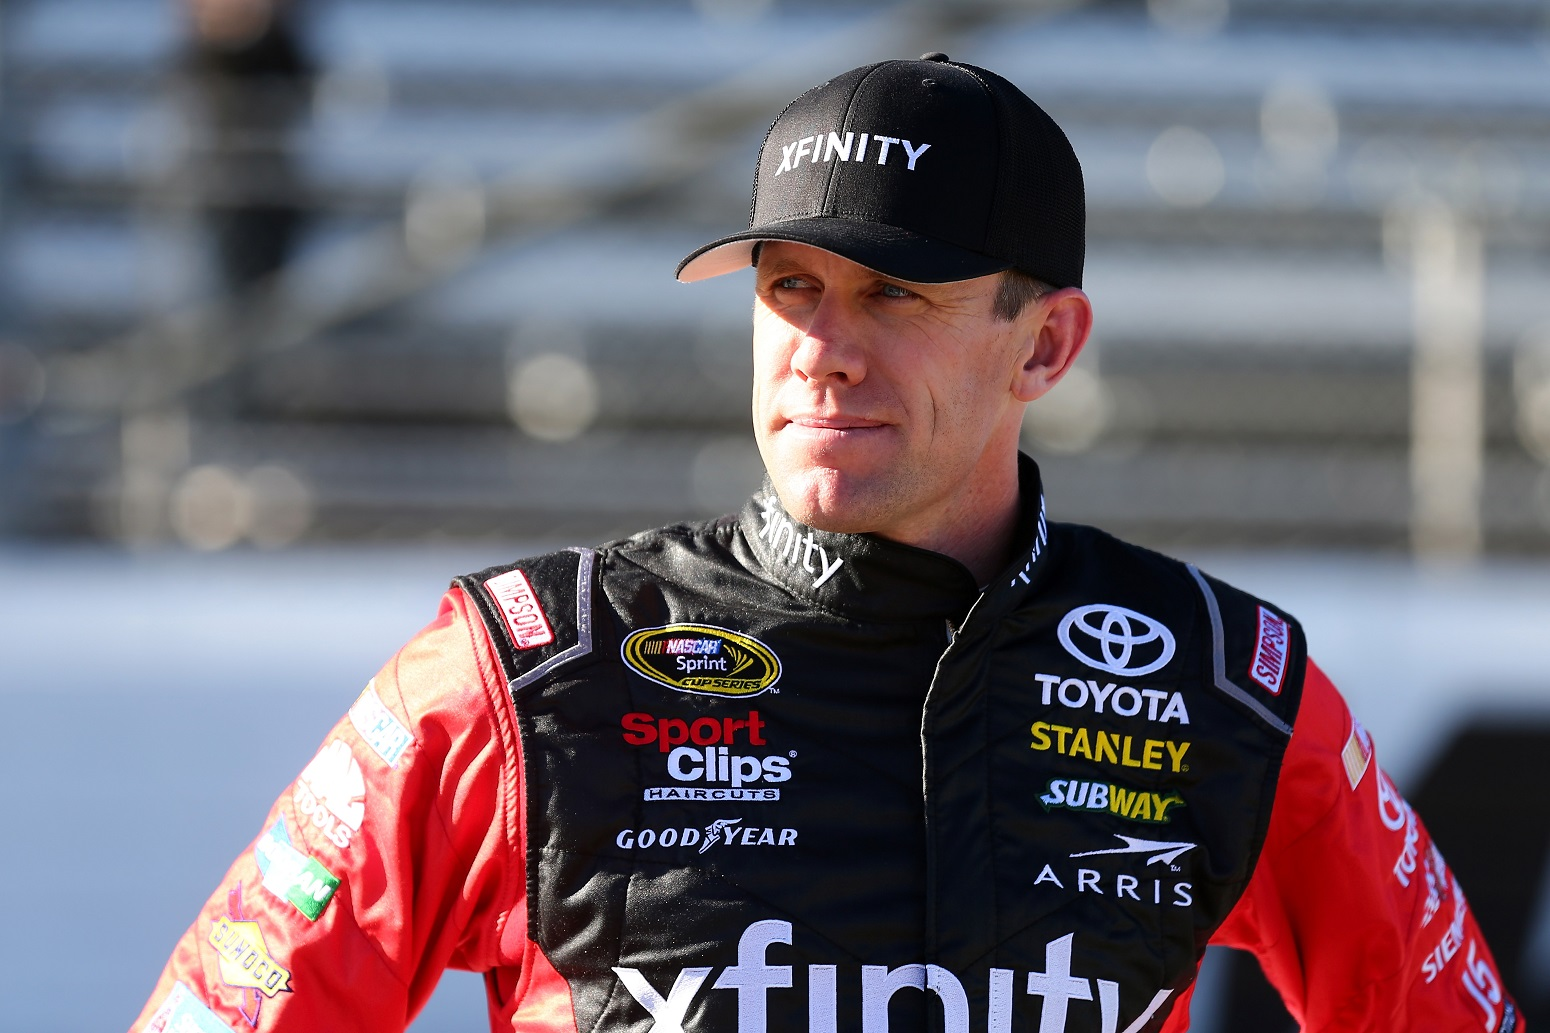 Carl Edwards Reveals Why He Doesn't Want to Return to NASCAR